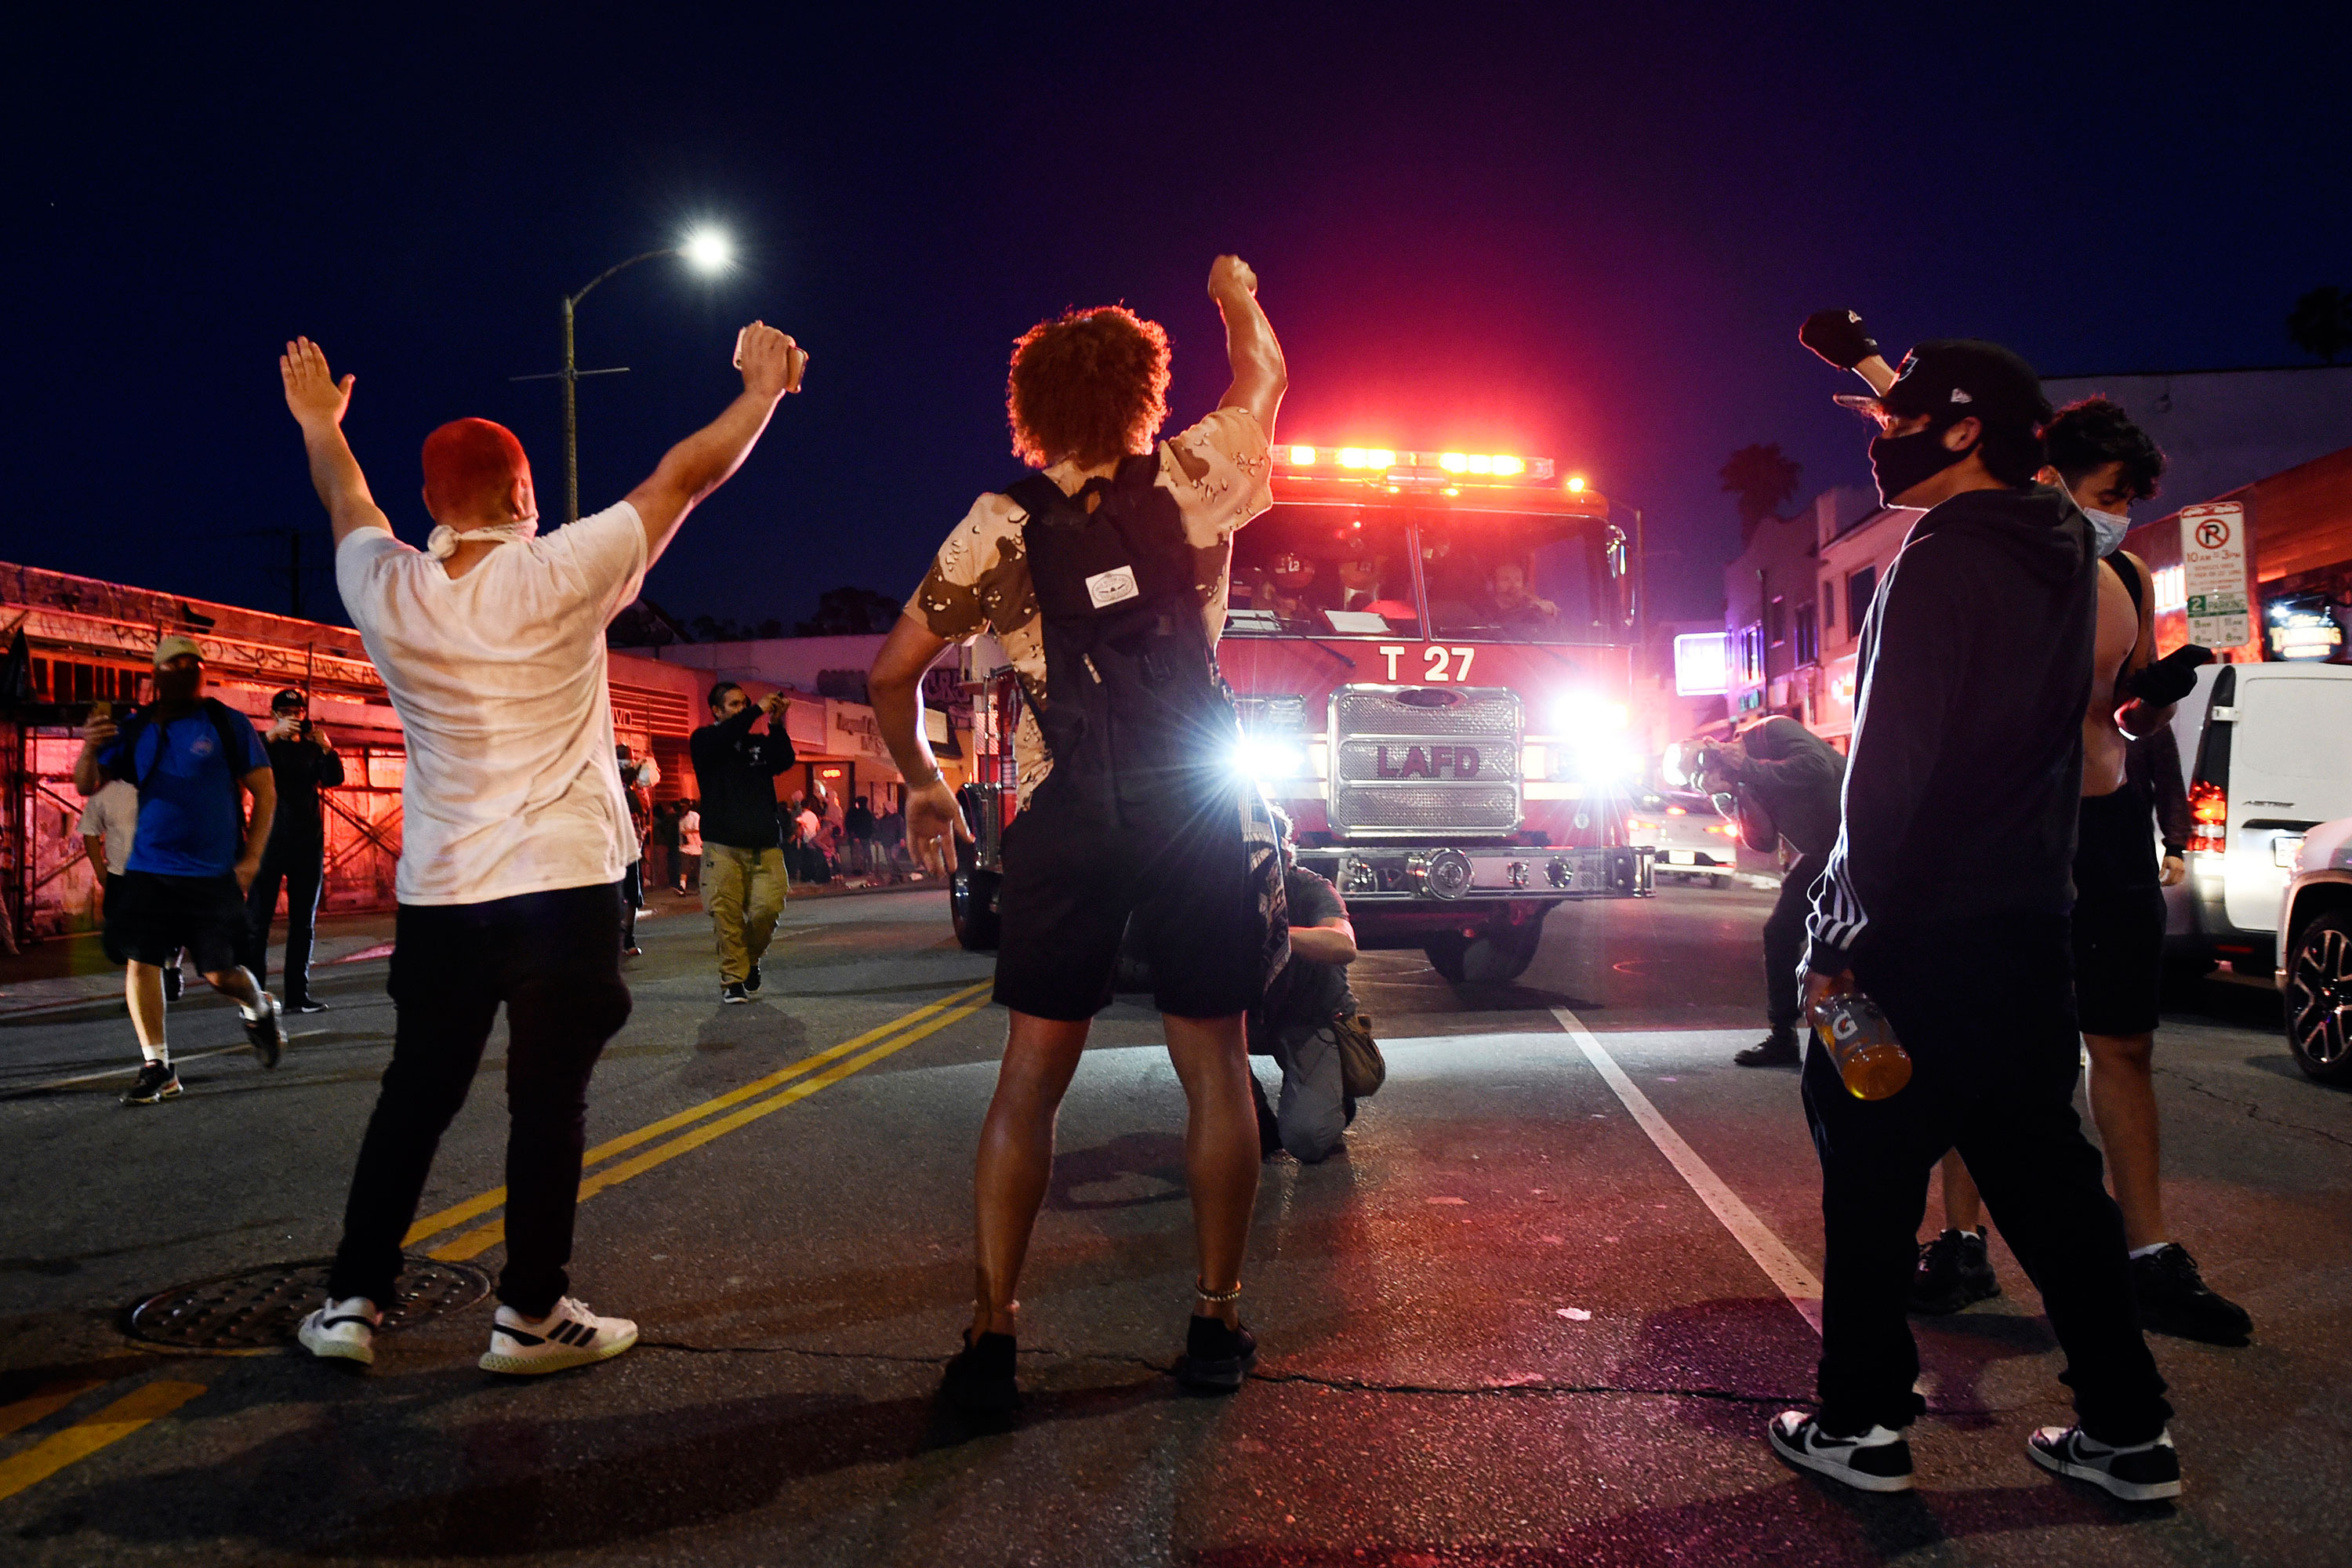 Demonstrators stand in the middle of Melrose Avenue on Saturday night in Los Angeles.